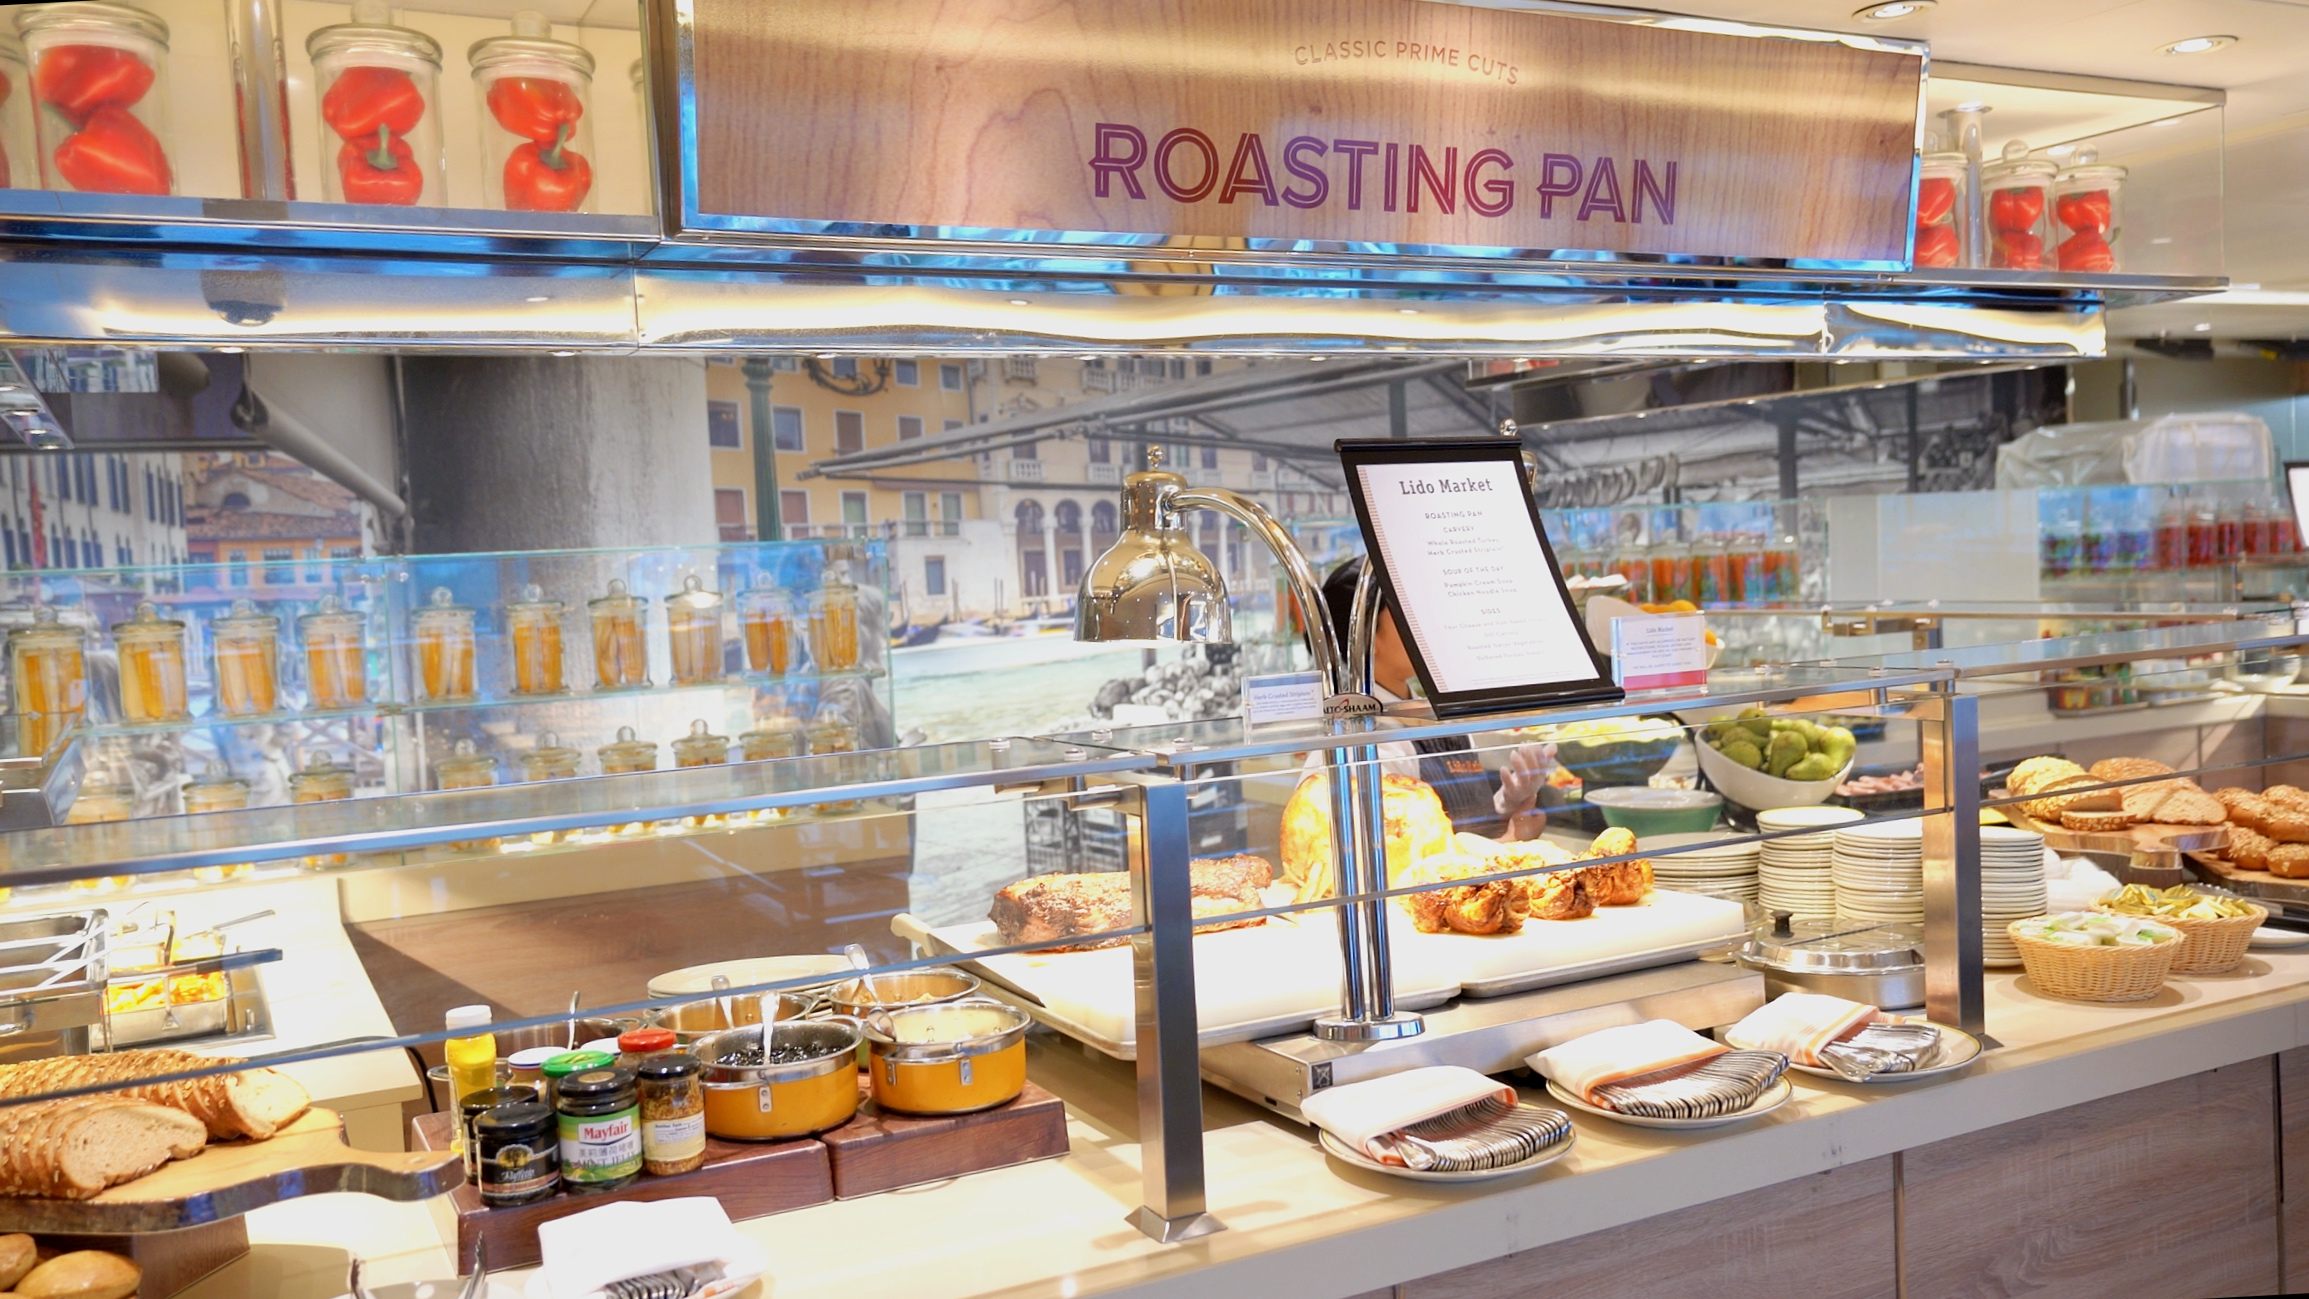 The roasting section